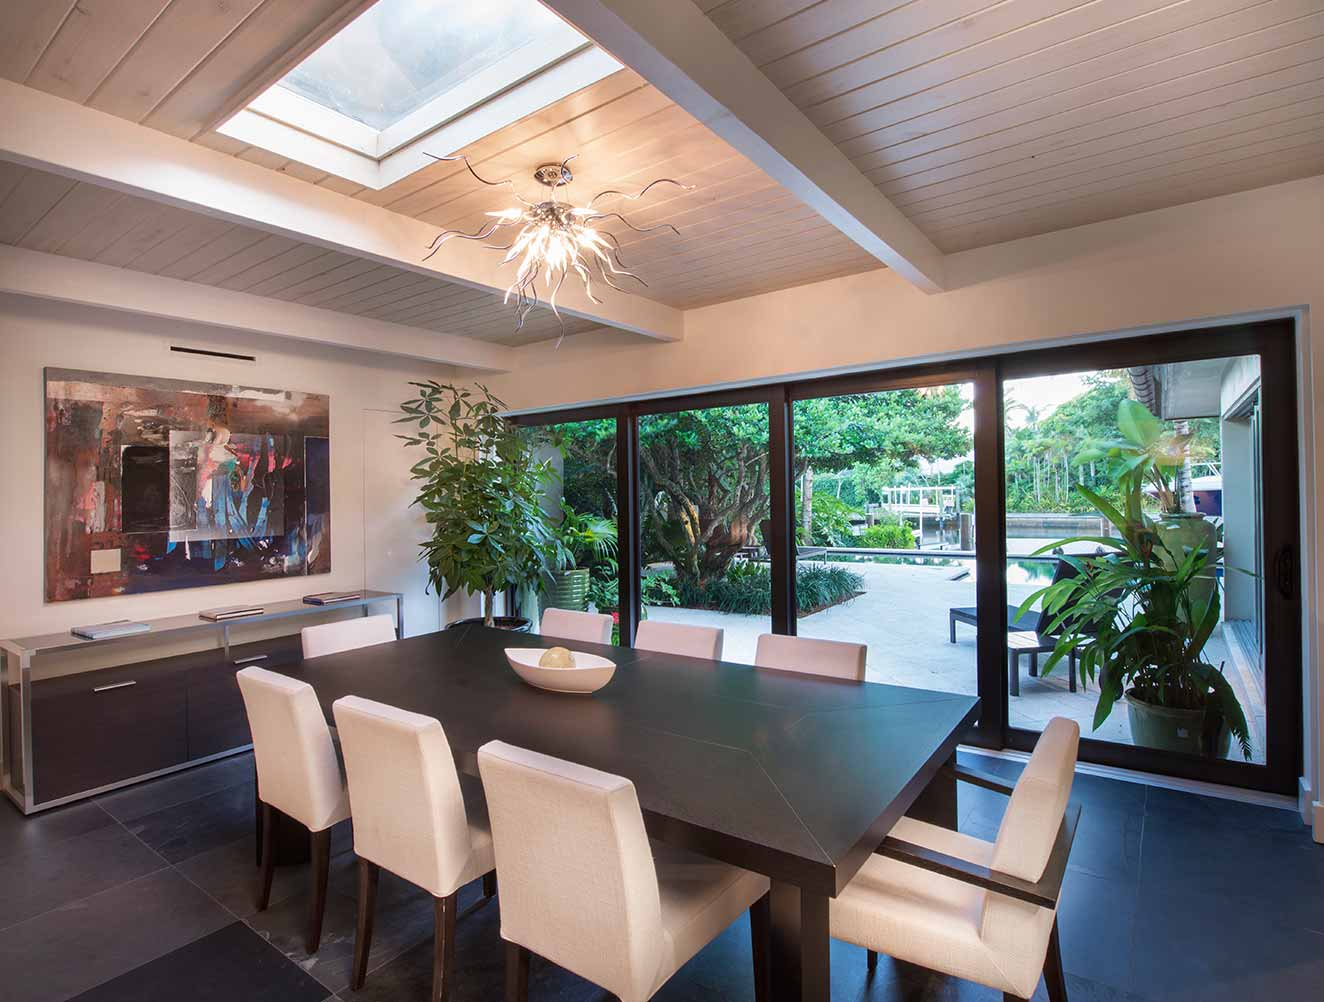 Dining Room at 21st Ave Residence in Naples Florida, single family home designed by Kukk Architecture & Design Naples Architecture Firm